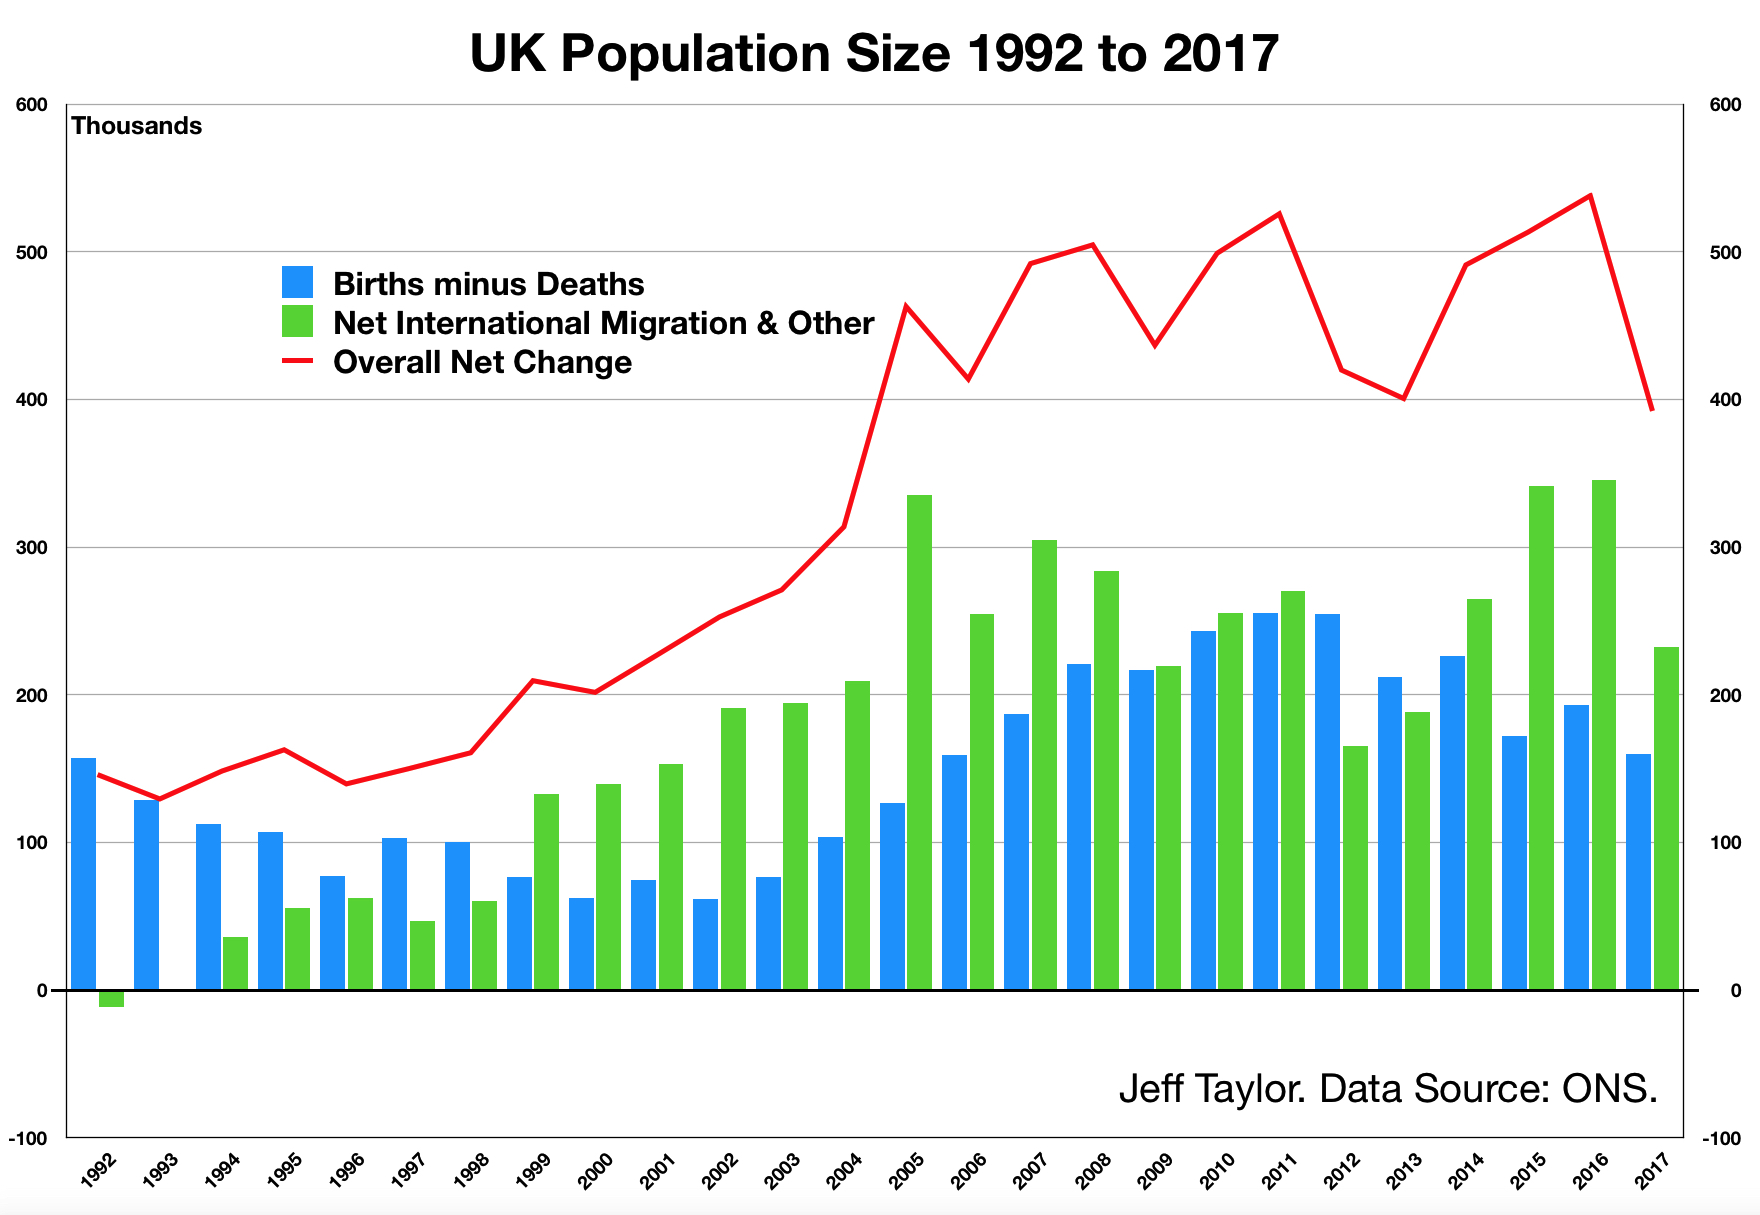 UK Pop 1992 to 2017